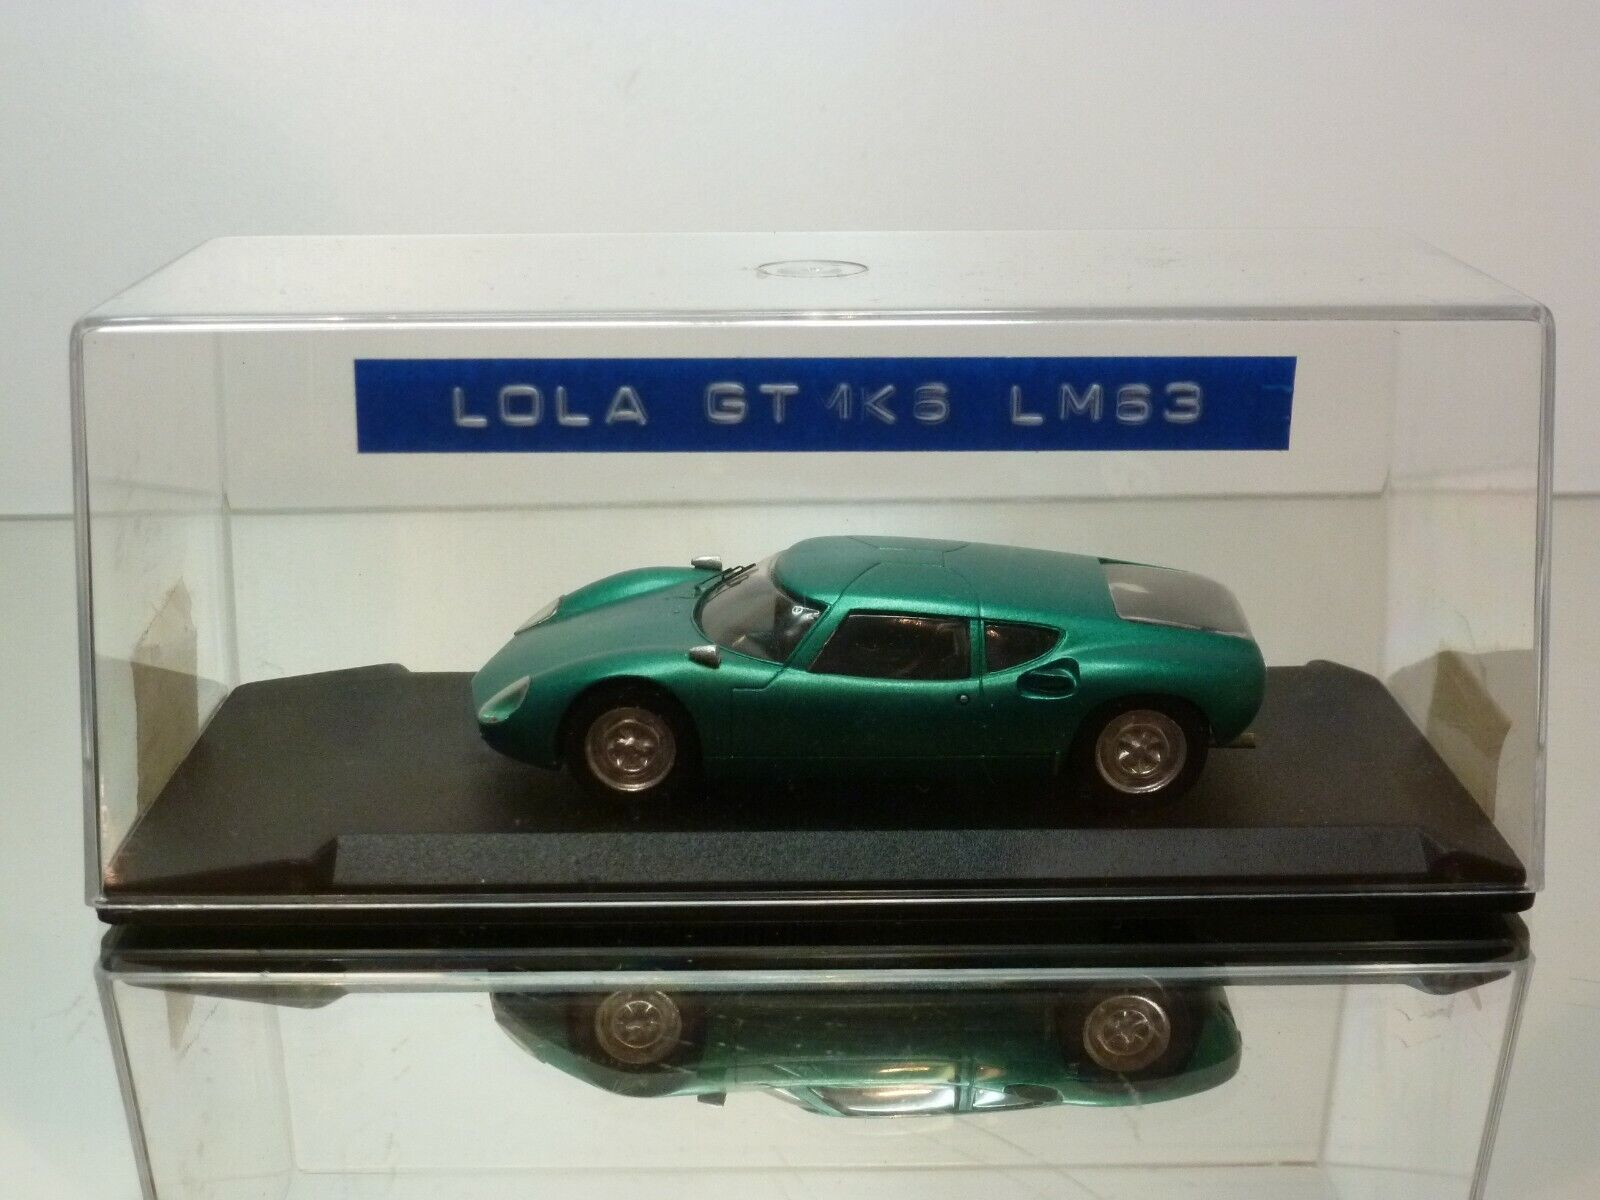 MINI RACING LOLA GT 1K6  LE hommeS 1963 - vert 1 43 - VERY GOOD IN BOX  liquidation de la boutique